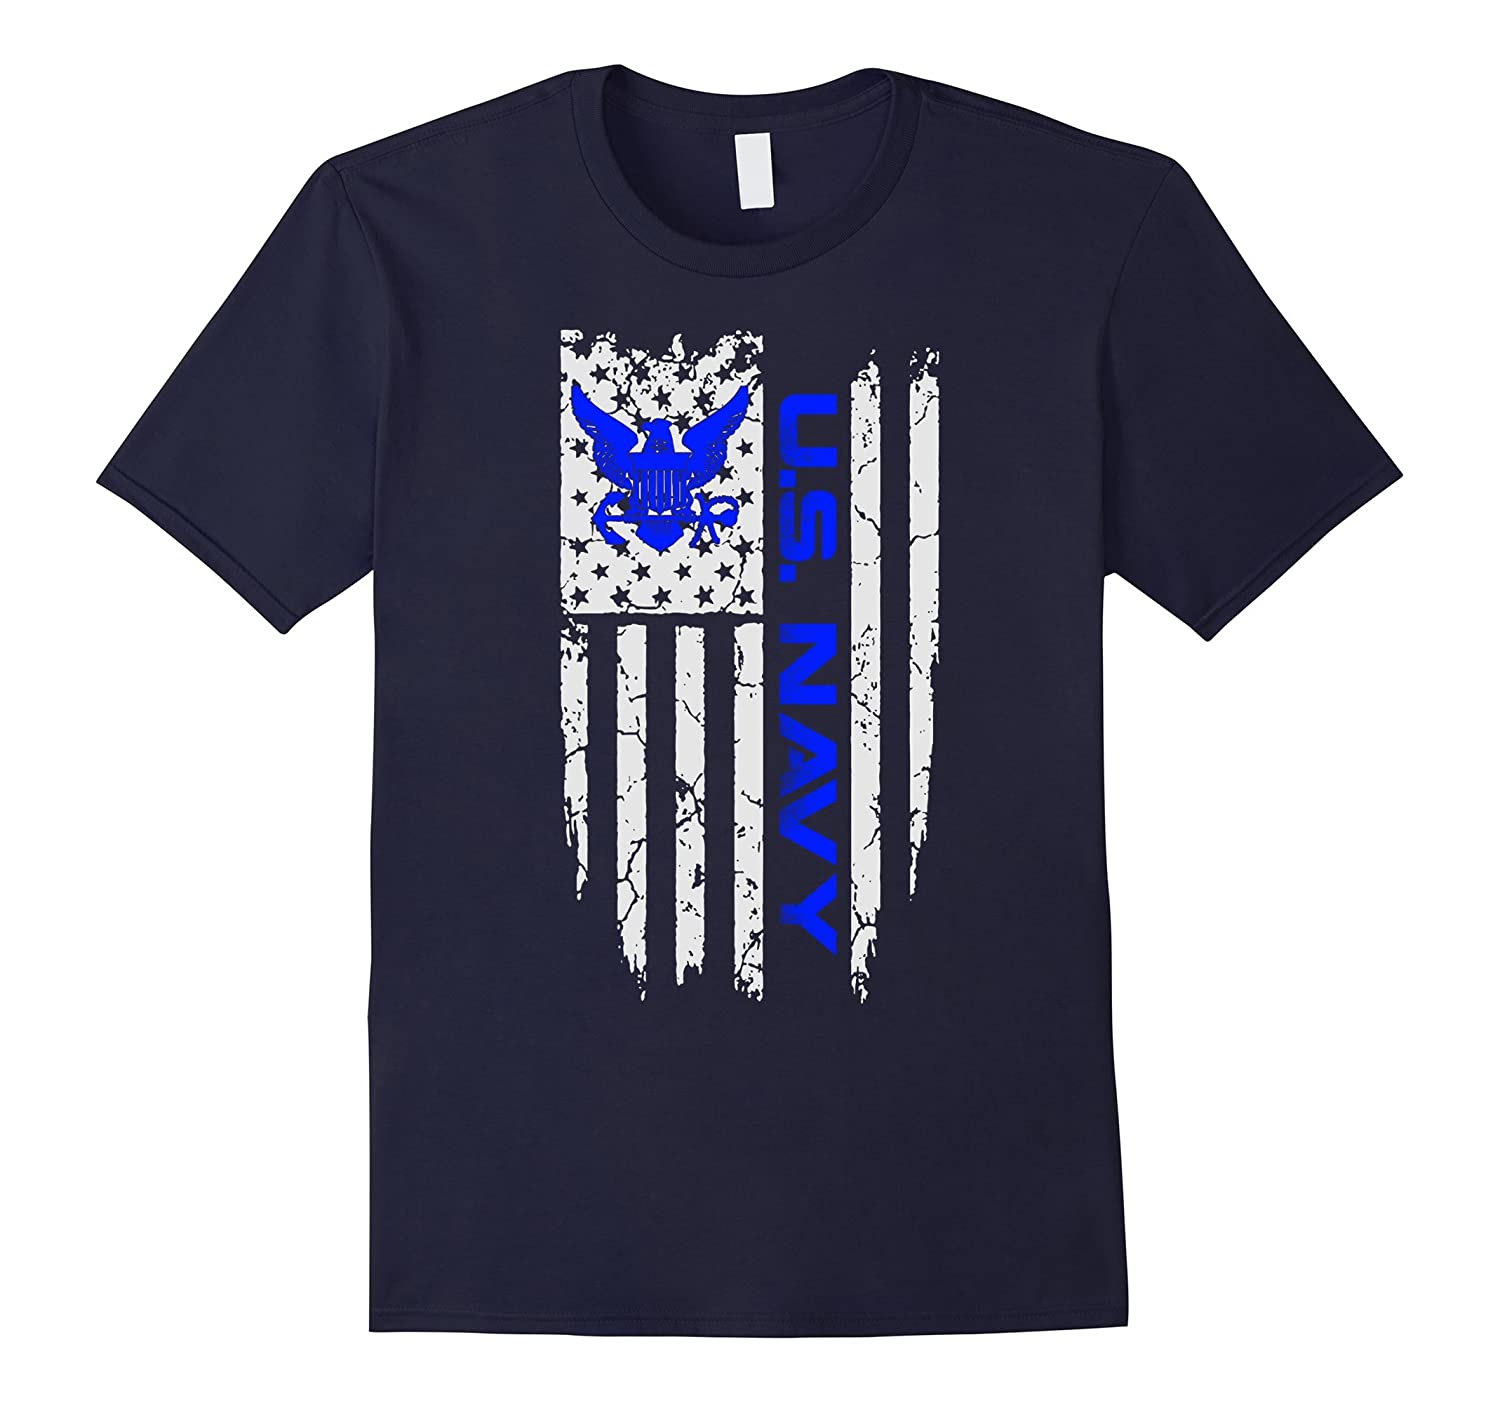 US NAVY AMERICAN FLAG SHIRT-Vaci